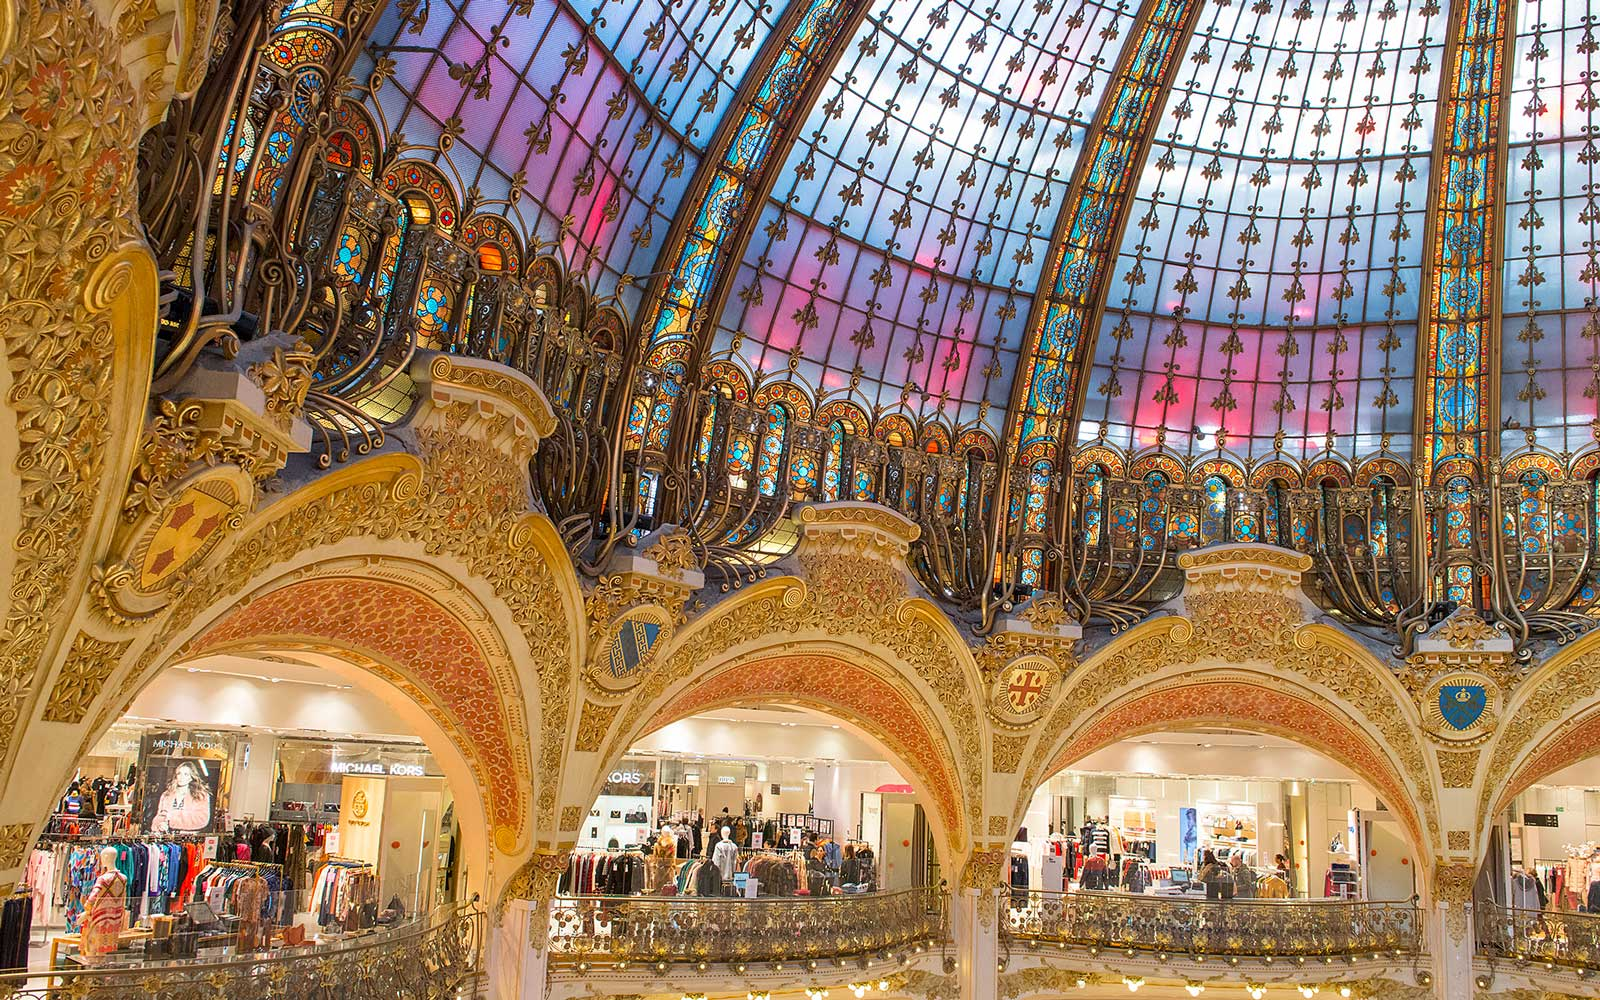 Galeries Lafayette Is Paris's Hidden Architectural Treasure